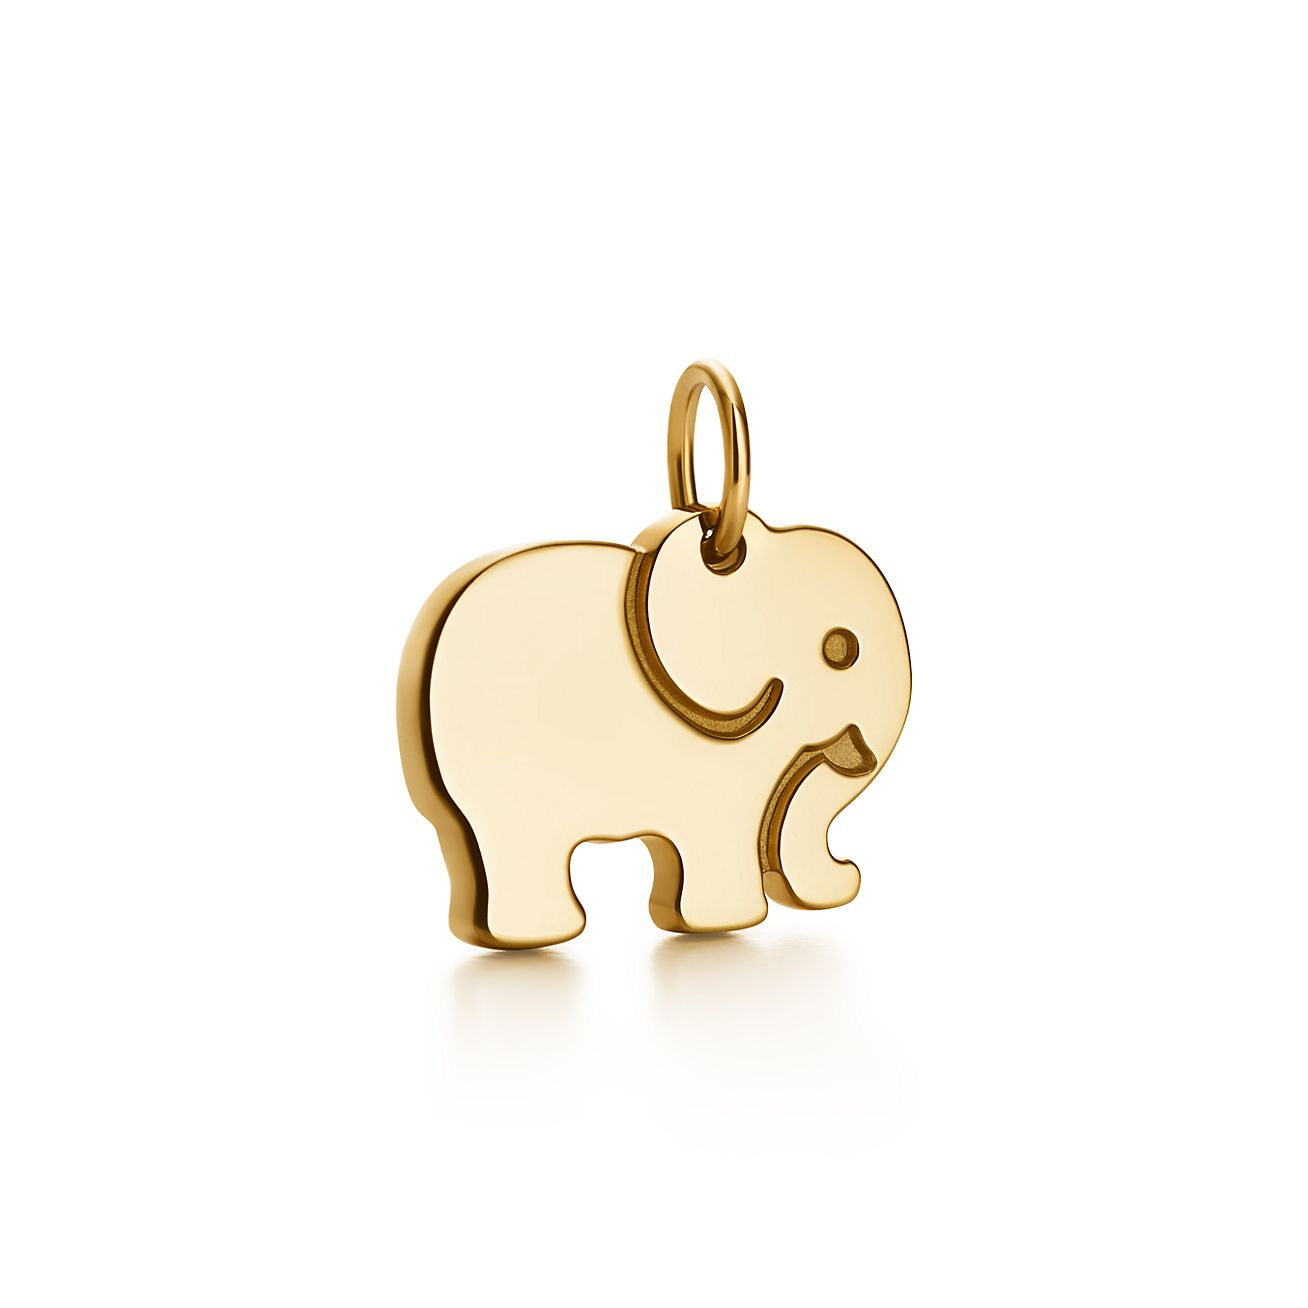 Tiffany Charms elephant never forgets charm in 18k gold Tiffany & Co.